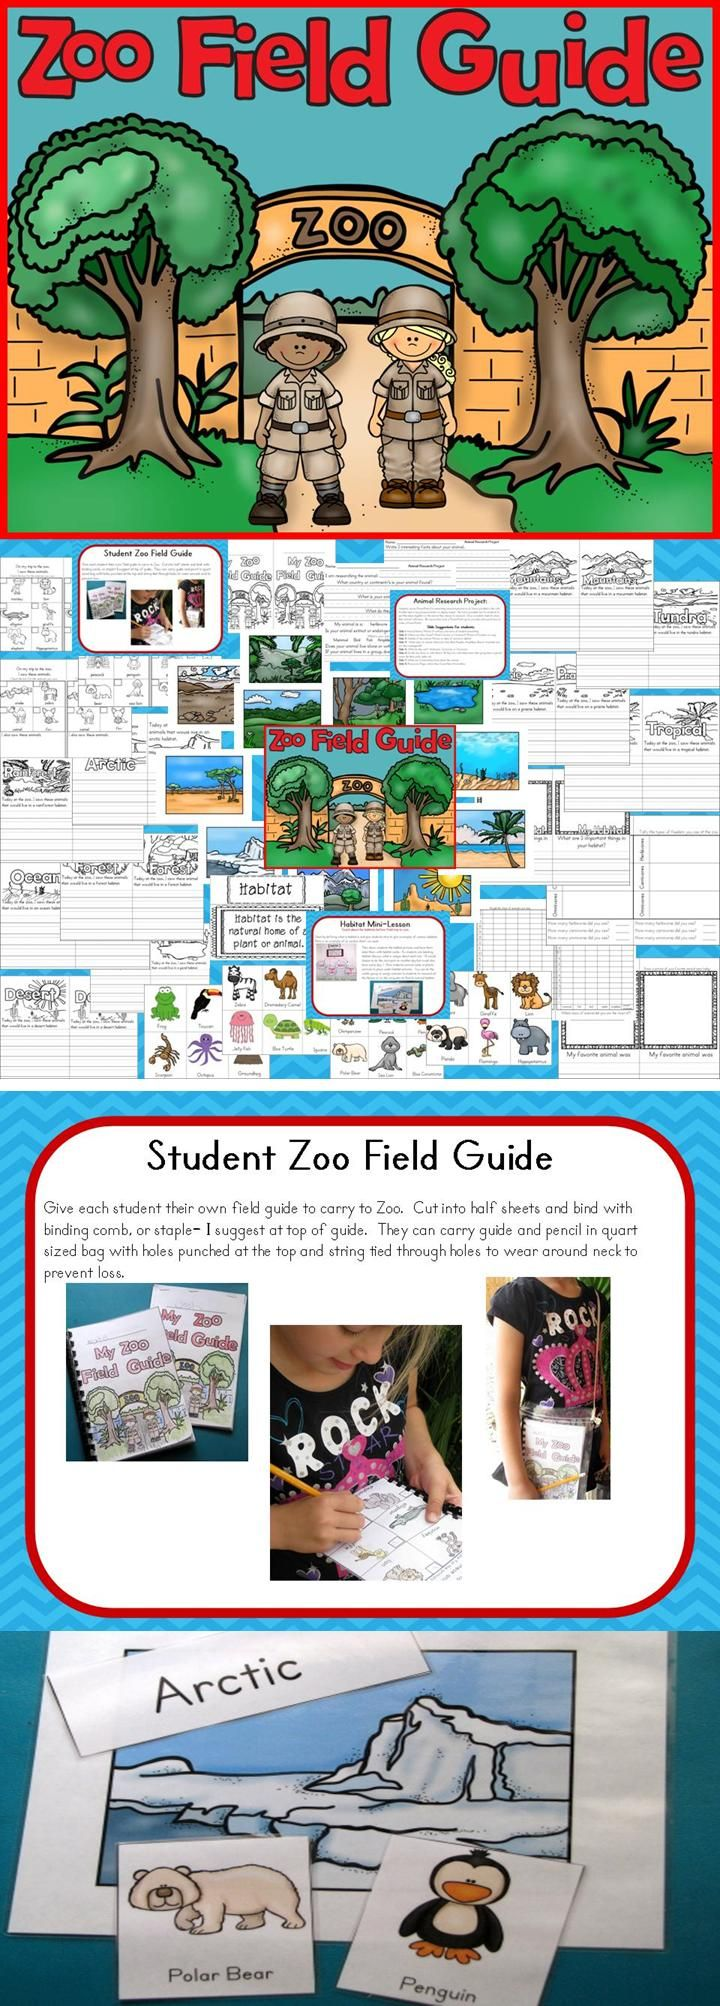 Zoo Field Guide and Animal Study pack has printables to keep students engaged at the zoo. It also has research project for students to do and mini-lesson on Habitat including anchor chart, habitats and animals to place in correct habitats. k-2 #zoo #animalstudy #zooguide